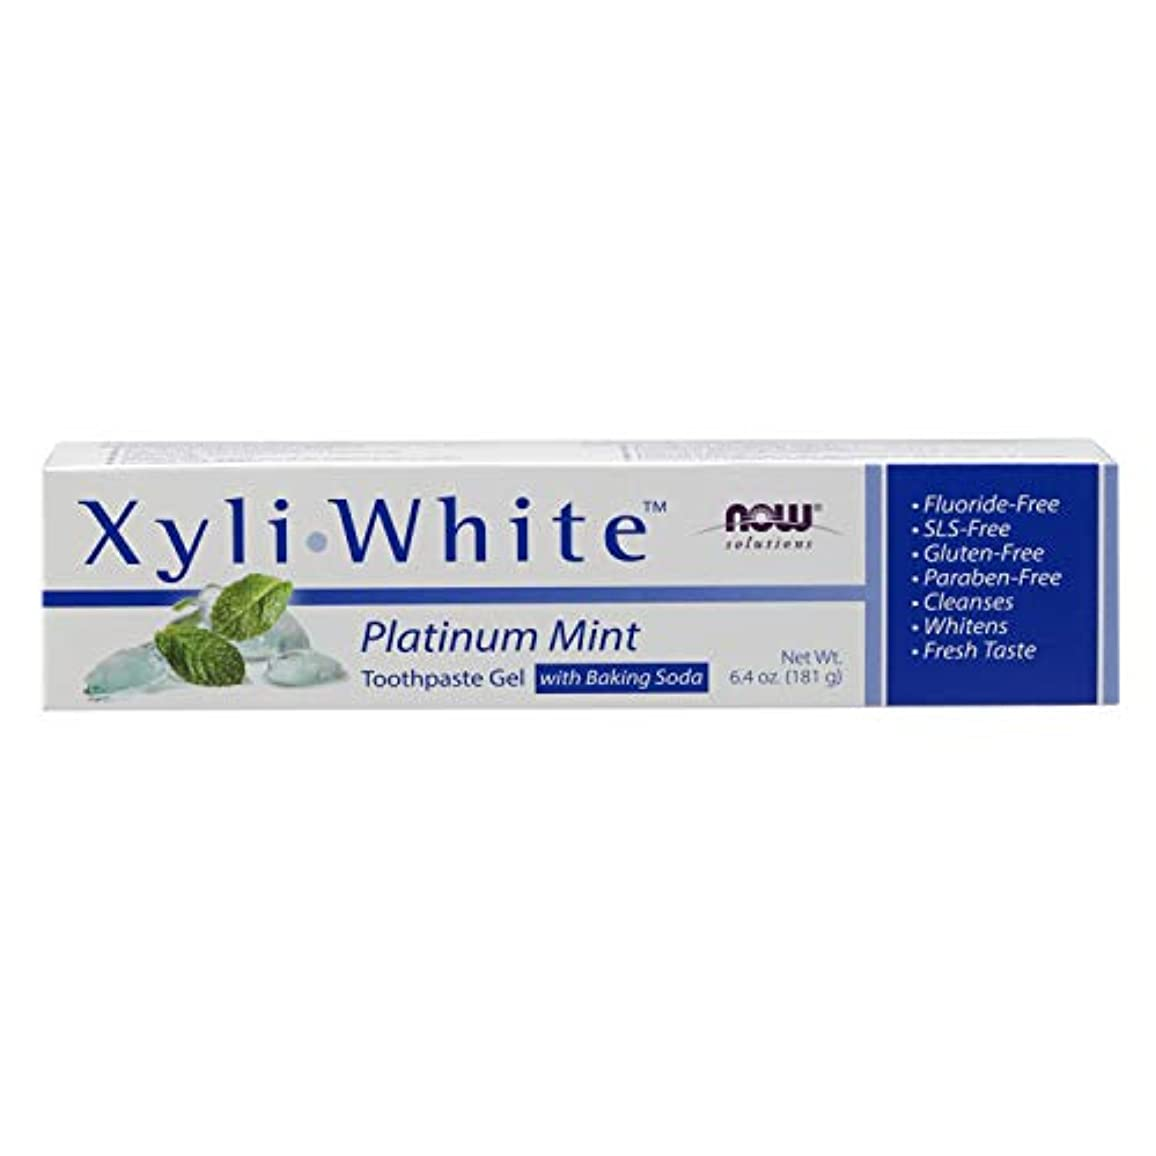 霧契約予備海外直送品 Now Foods Xyliwhite Platinum Mint with Baking Soda Toothpaste, 6.4 Oz